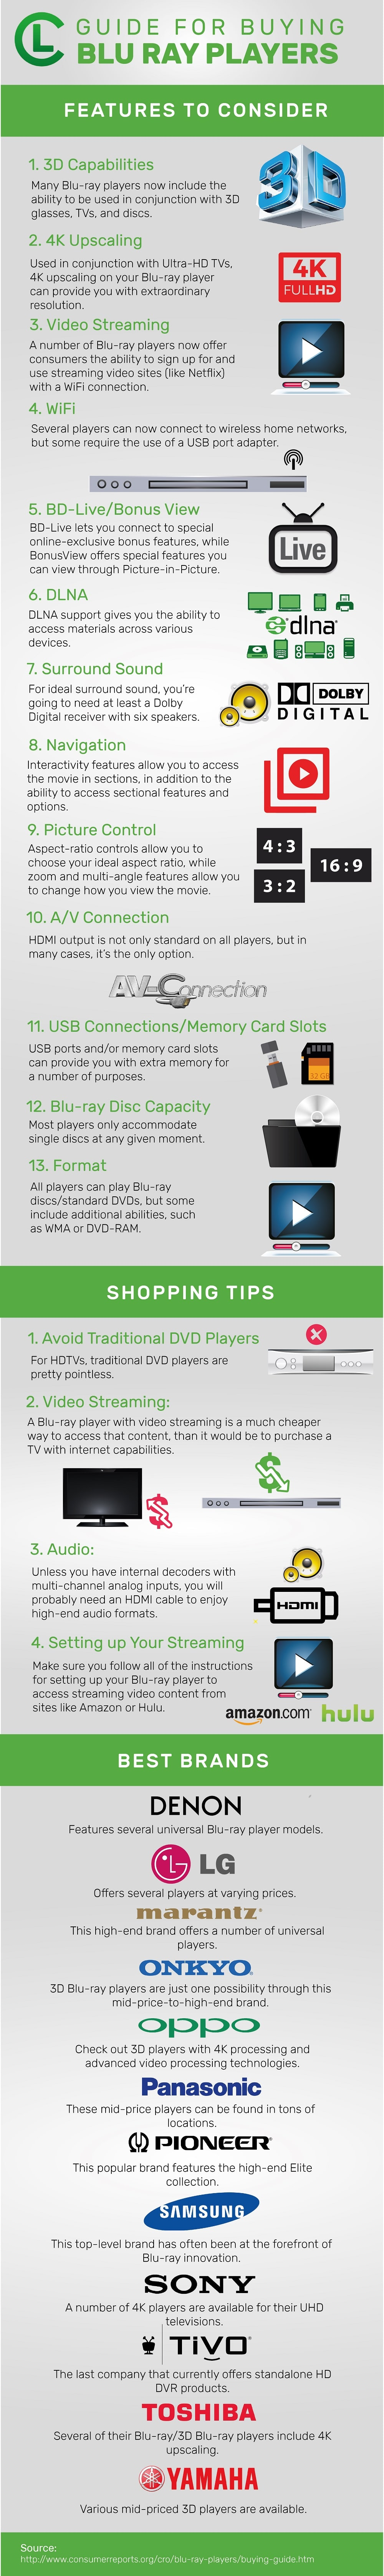 Guide For Buying Blue-Ray Players Infographic